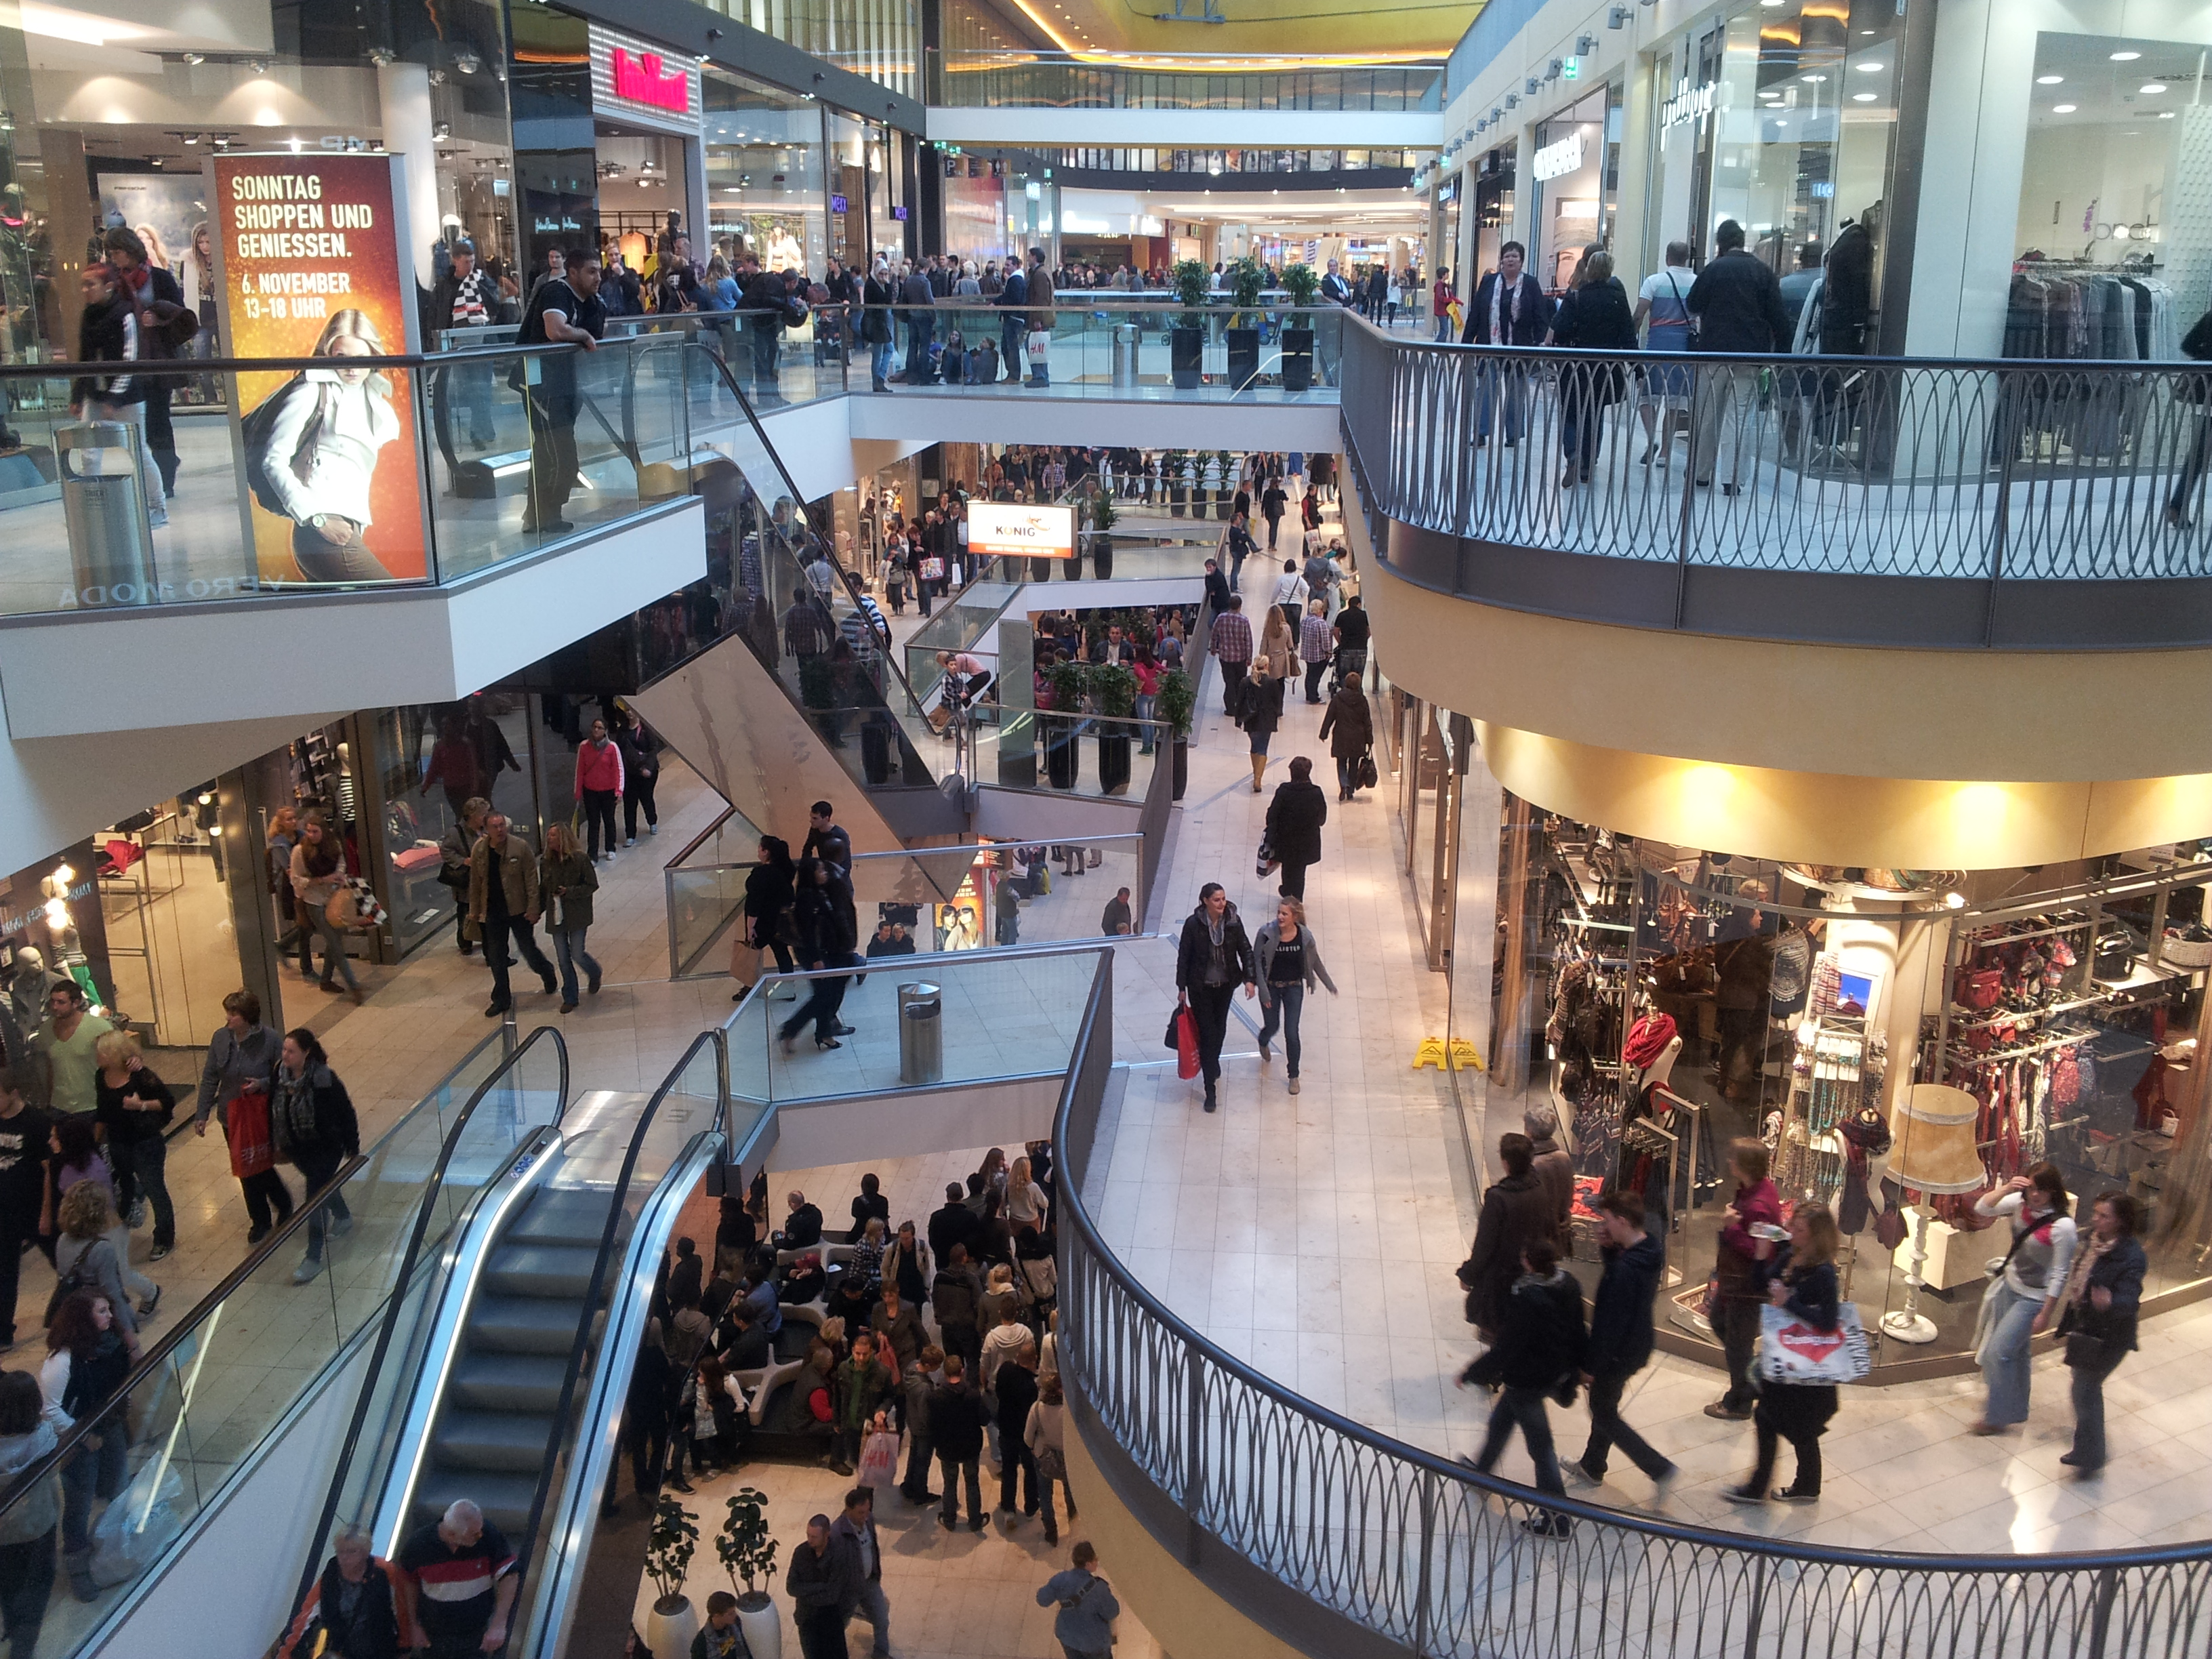 Dortmund Shopping Center 301 Moved Permanently